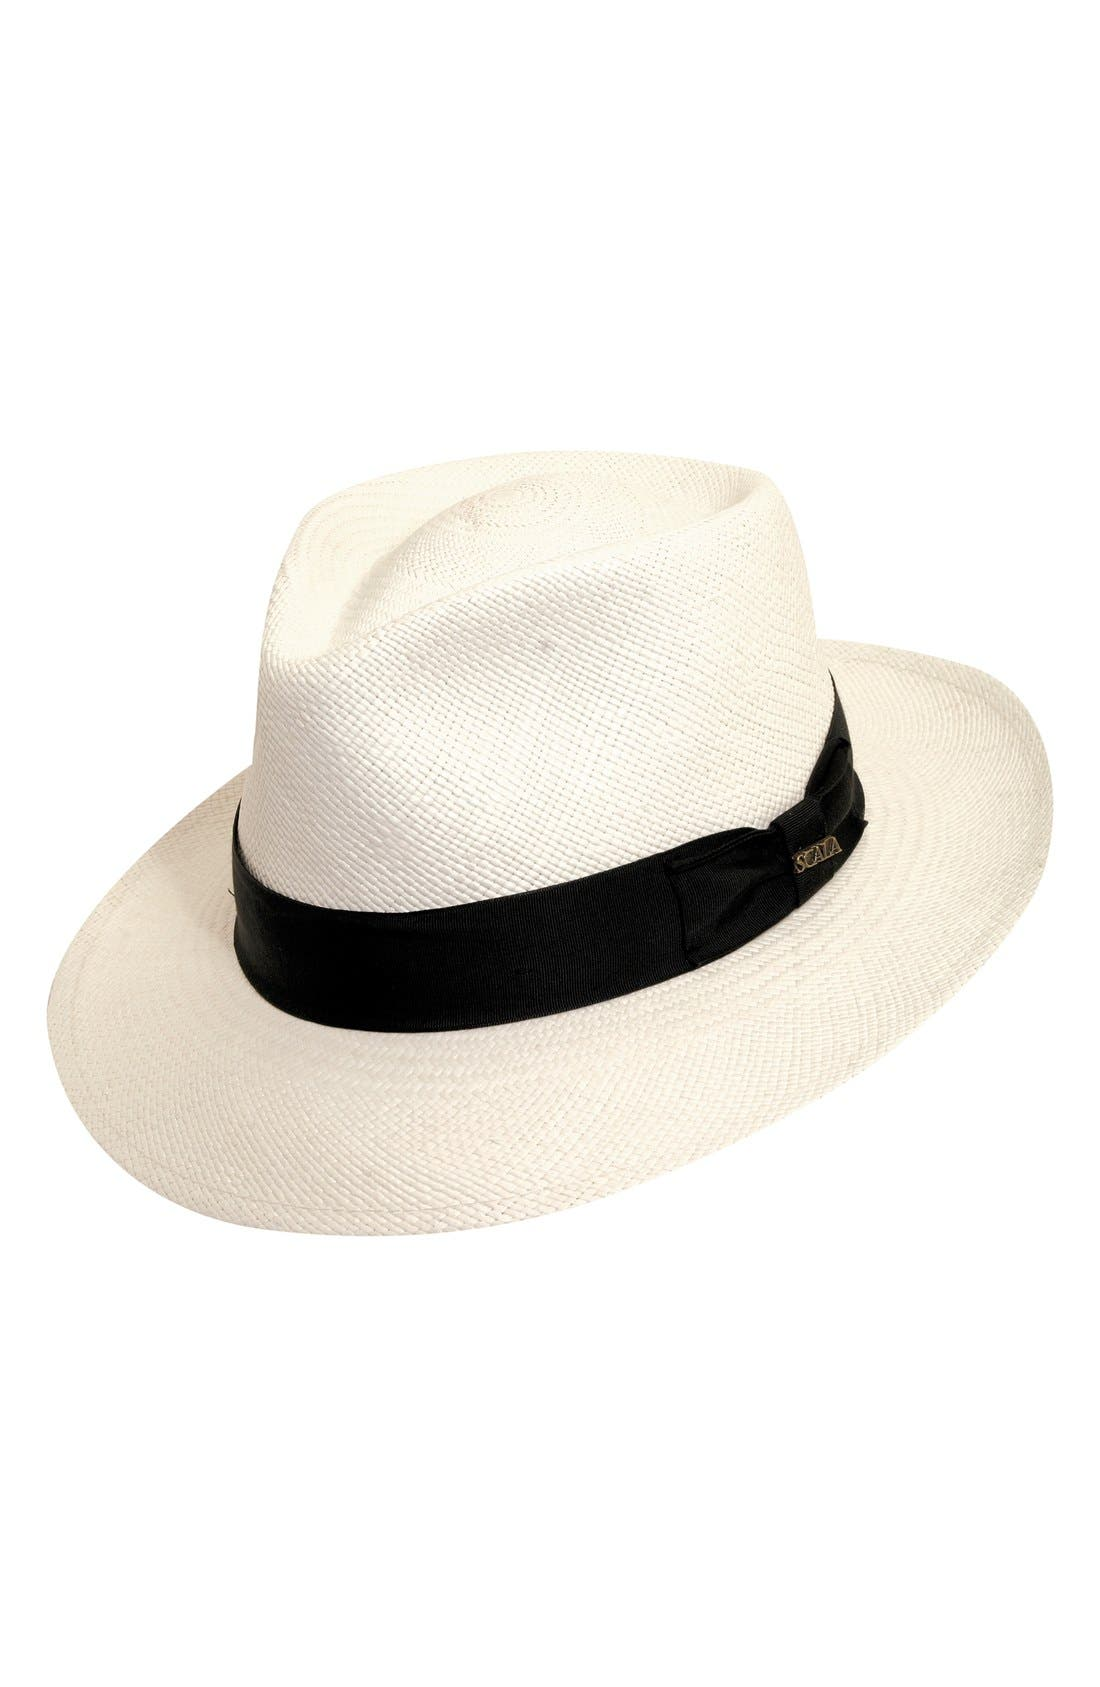 Straw Panama Hat,                         Main,                         color, BLEACH